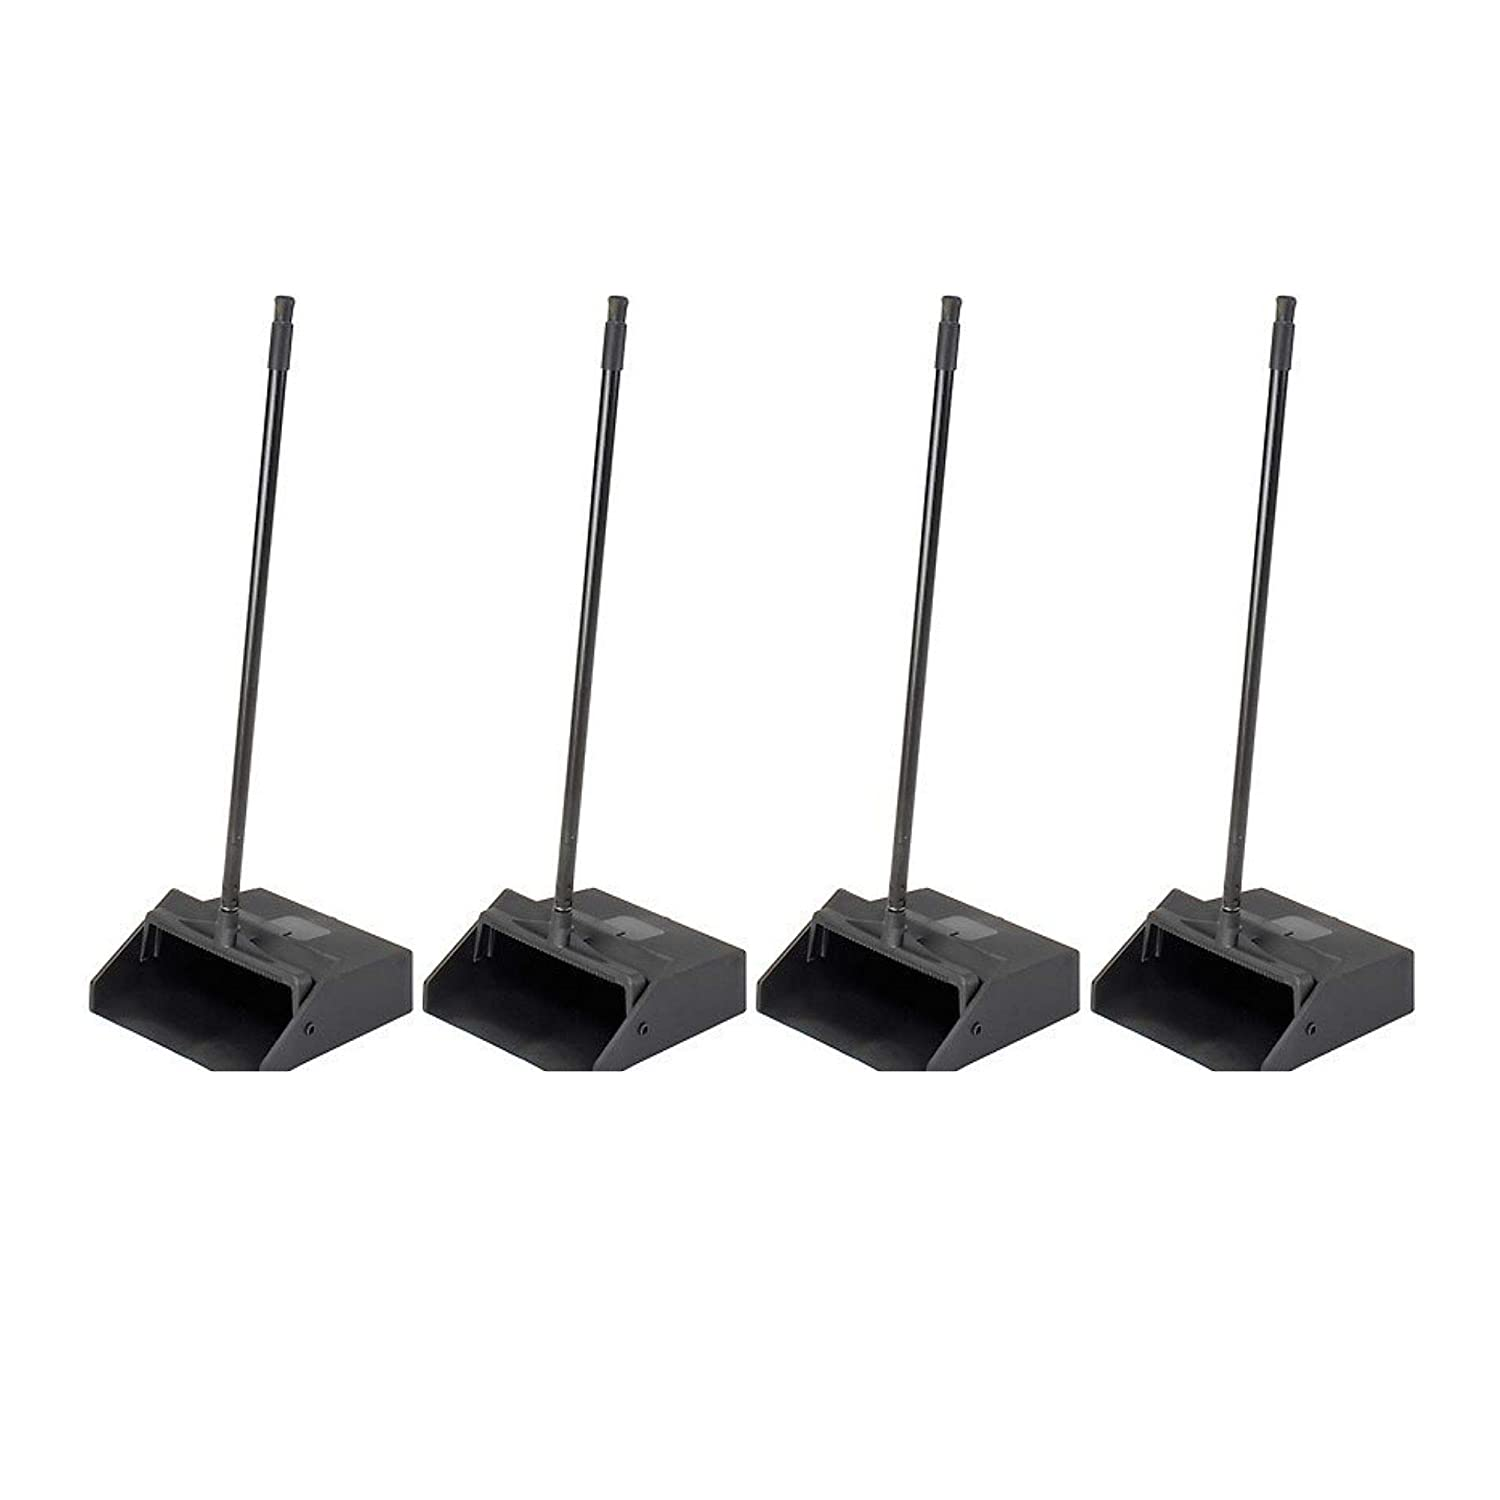 Carlisle 36141003 Duo-Pan 1-Piece Lobby Dust Pan with Metal Handle Black 2.5 Foot Overall Height